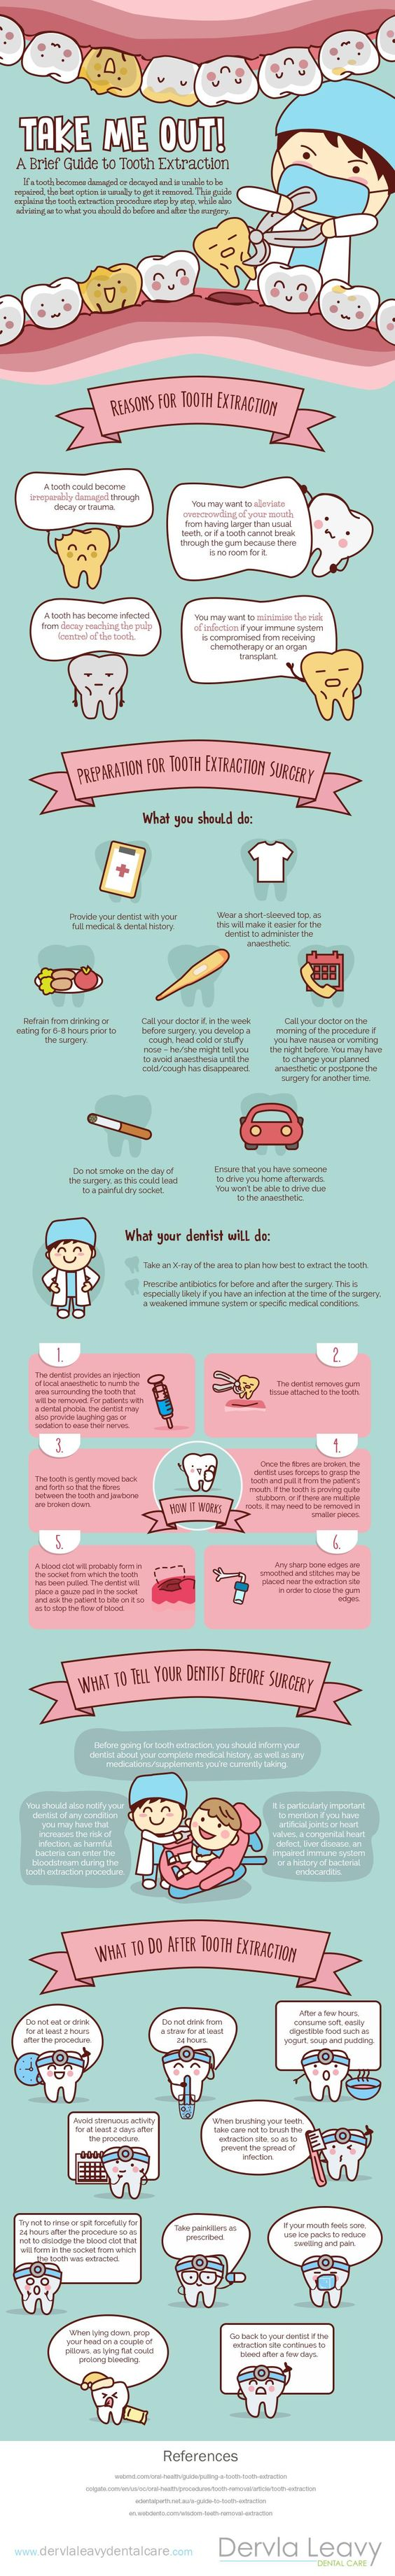 A brief guide to tooth extraction